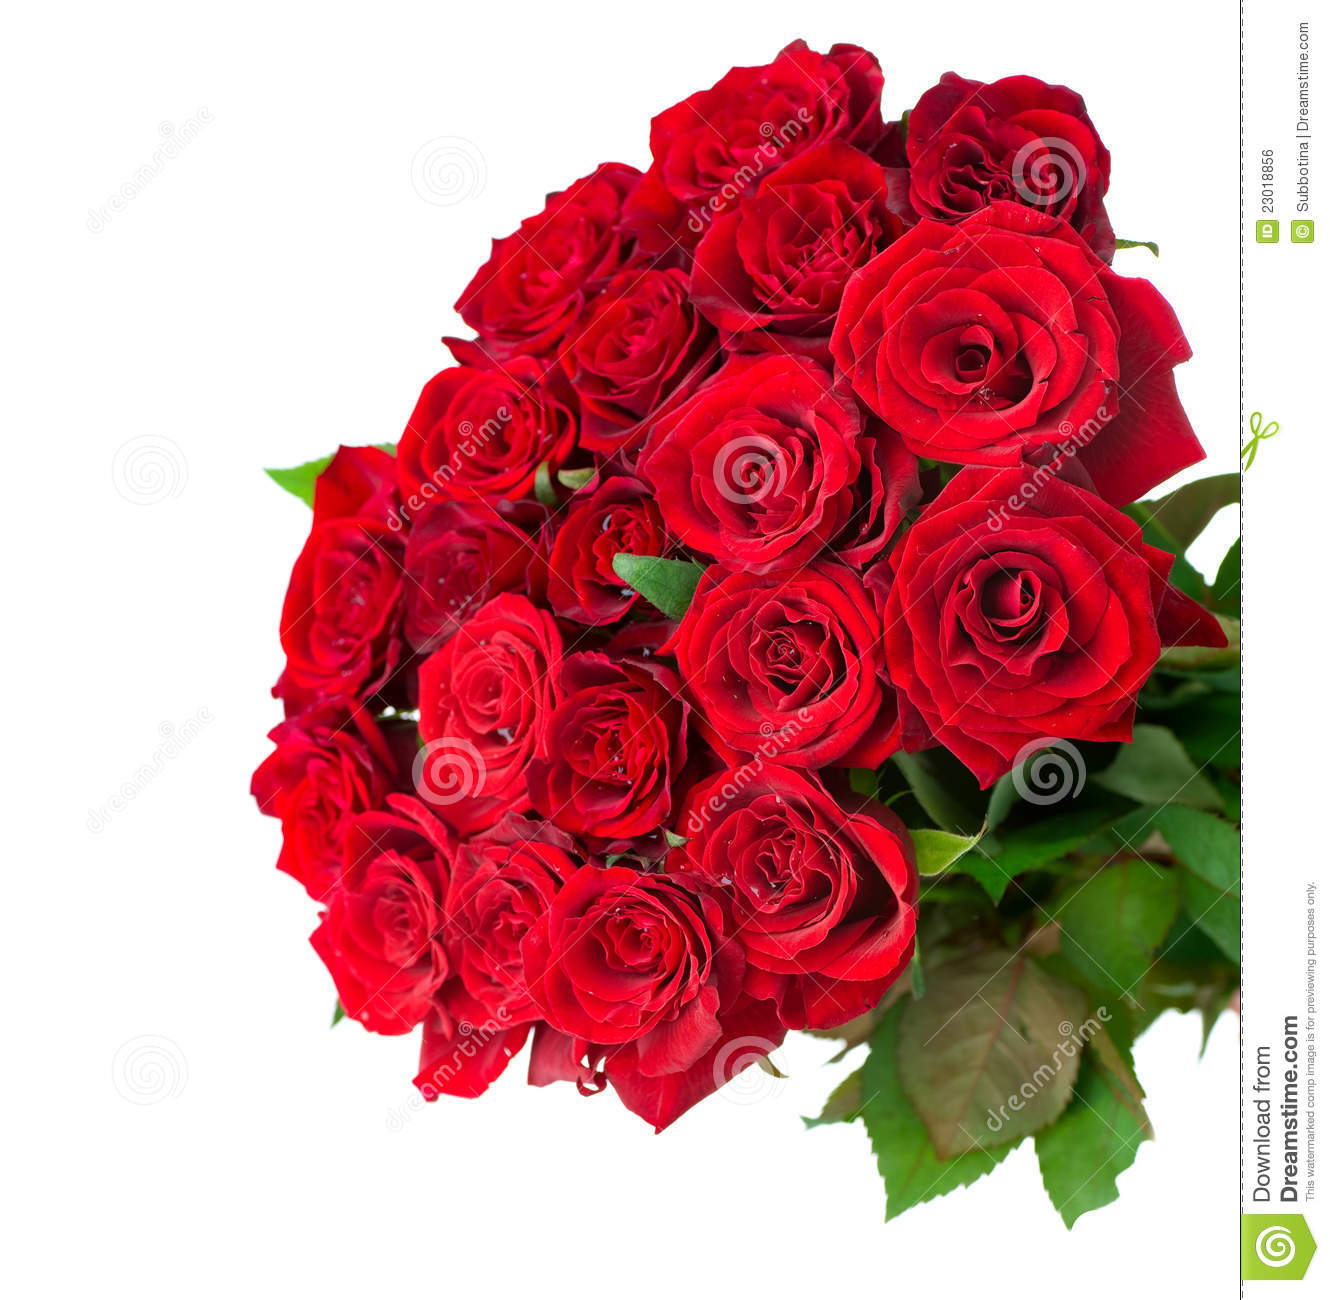 Rose Flowers Bouquet Stock Photo. Image Of Floral, Flower